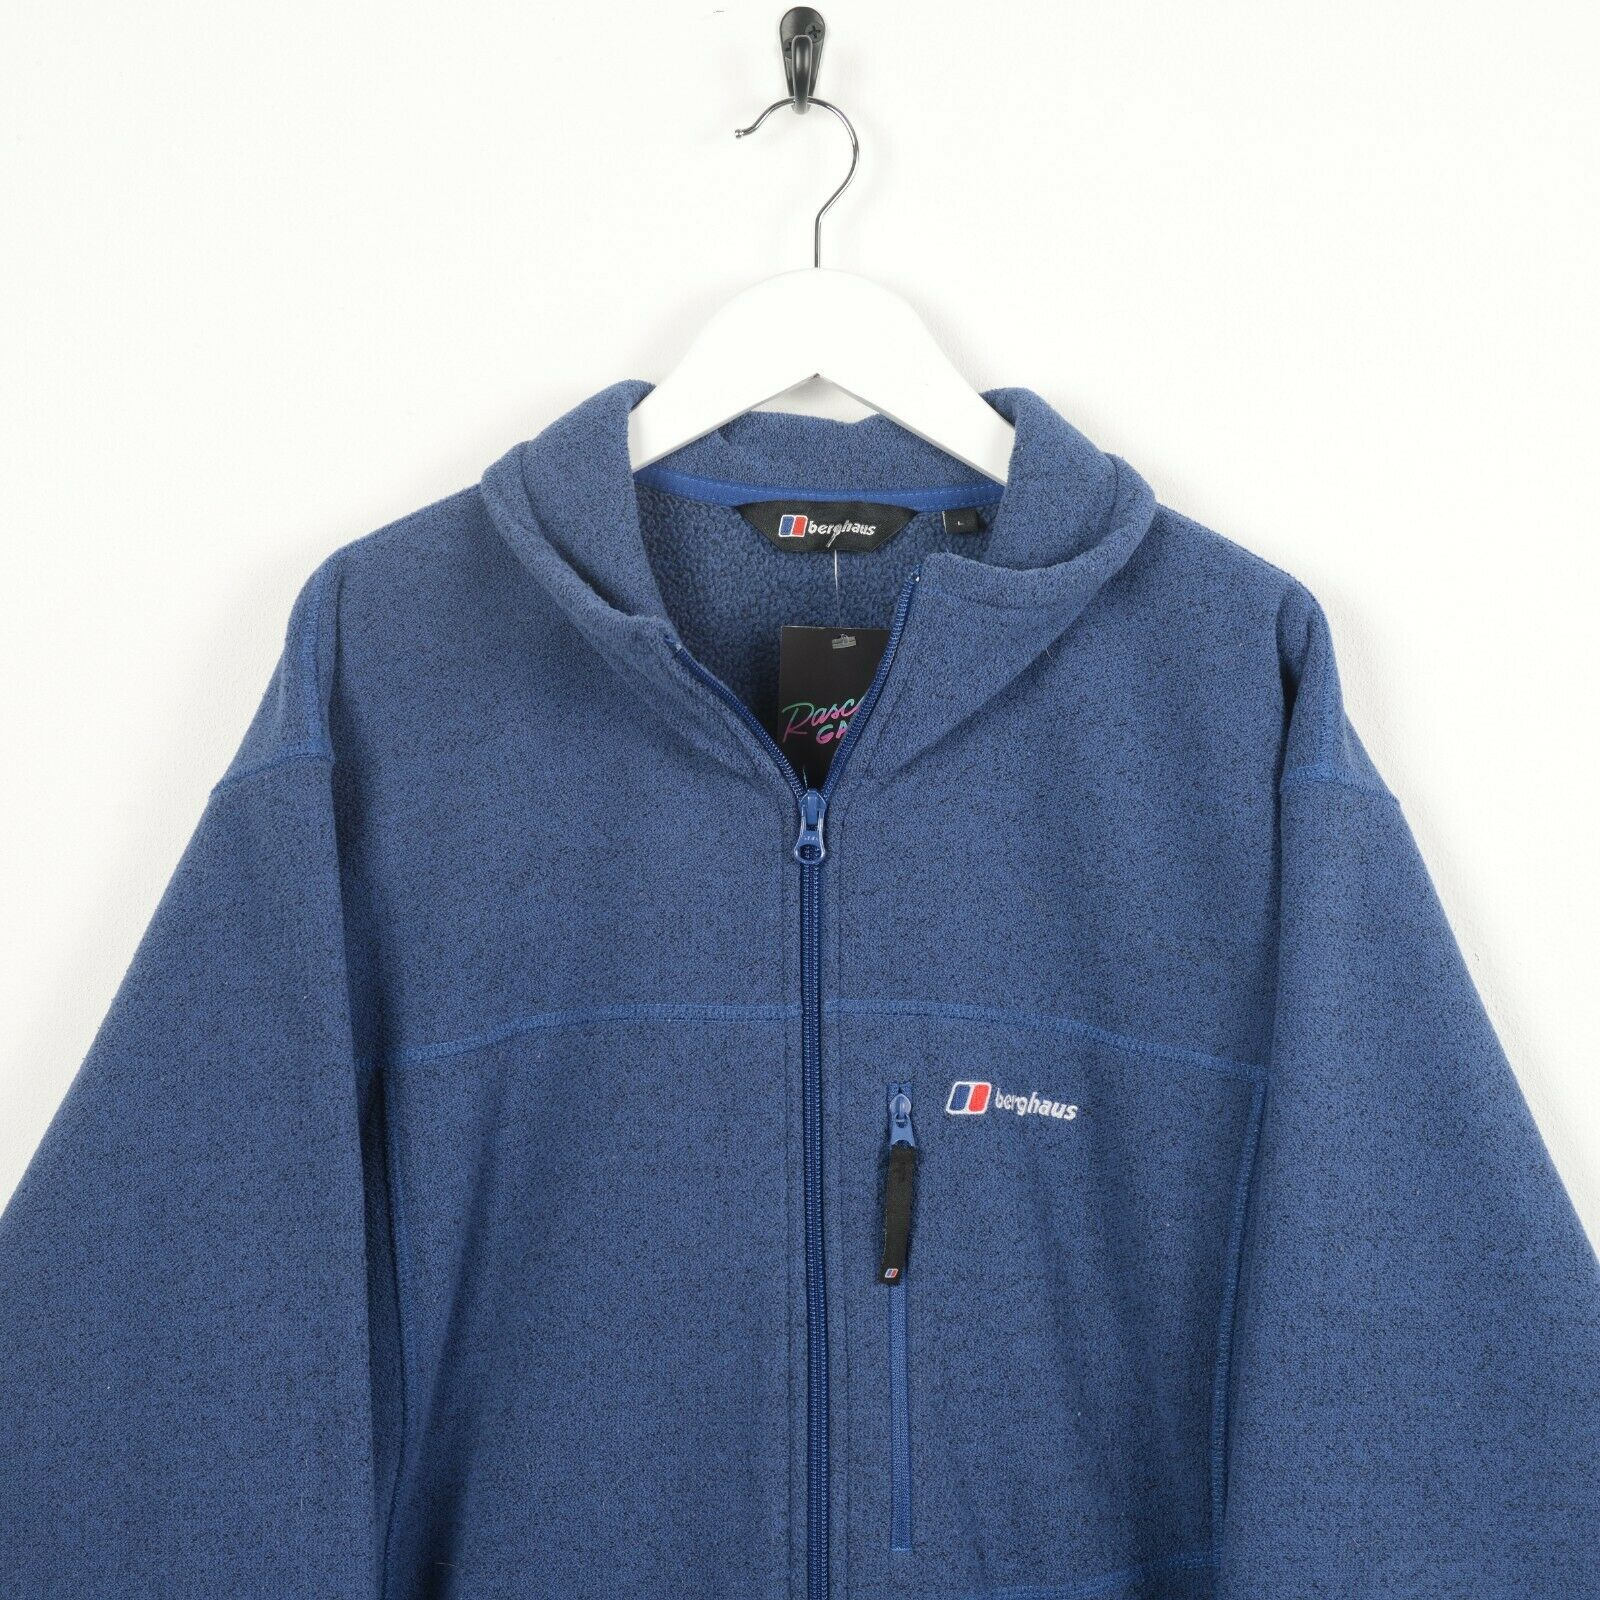 Vintage BERGHAUS Small Logo Zip Up Fleece Top Blue | Large L